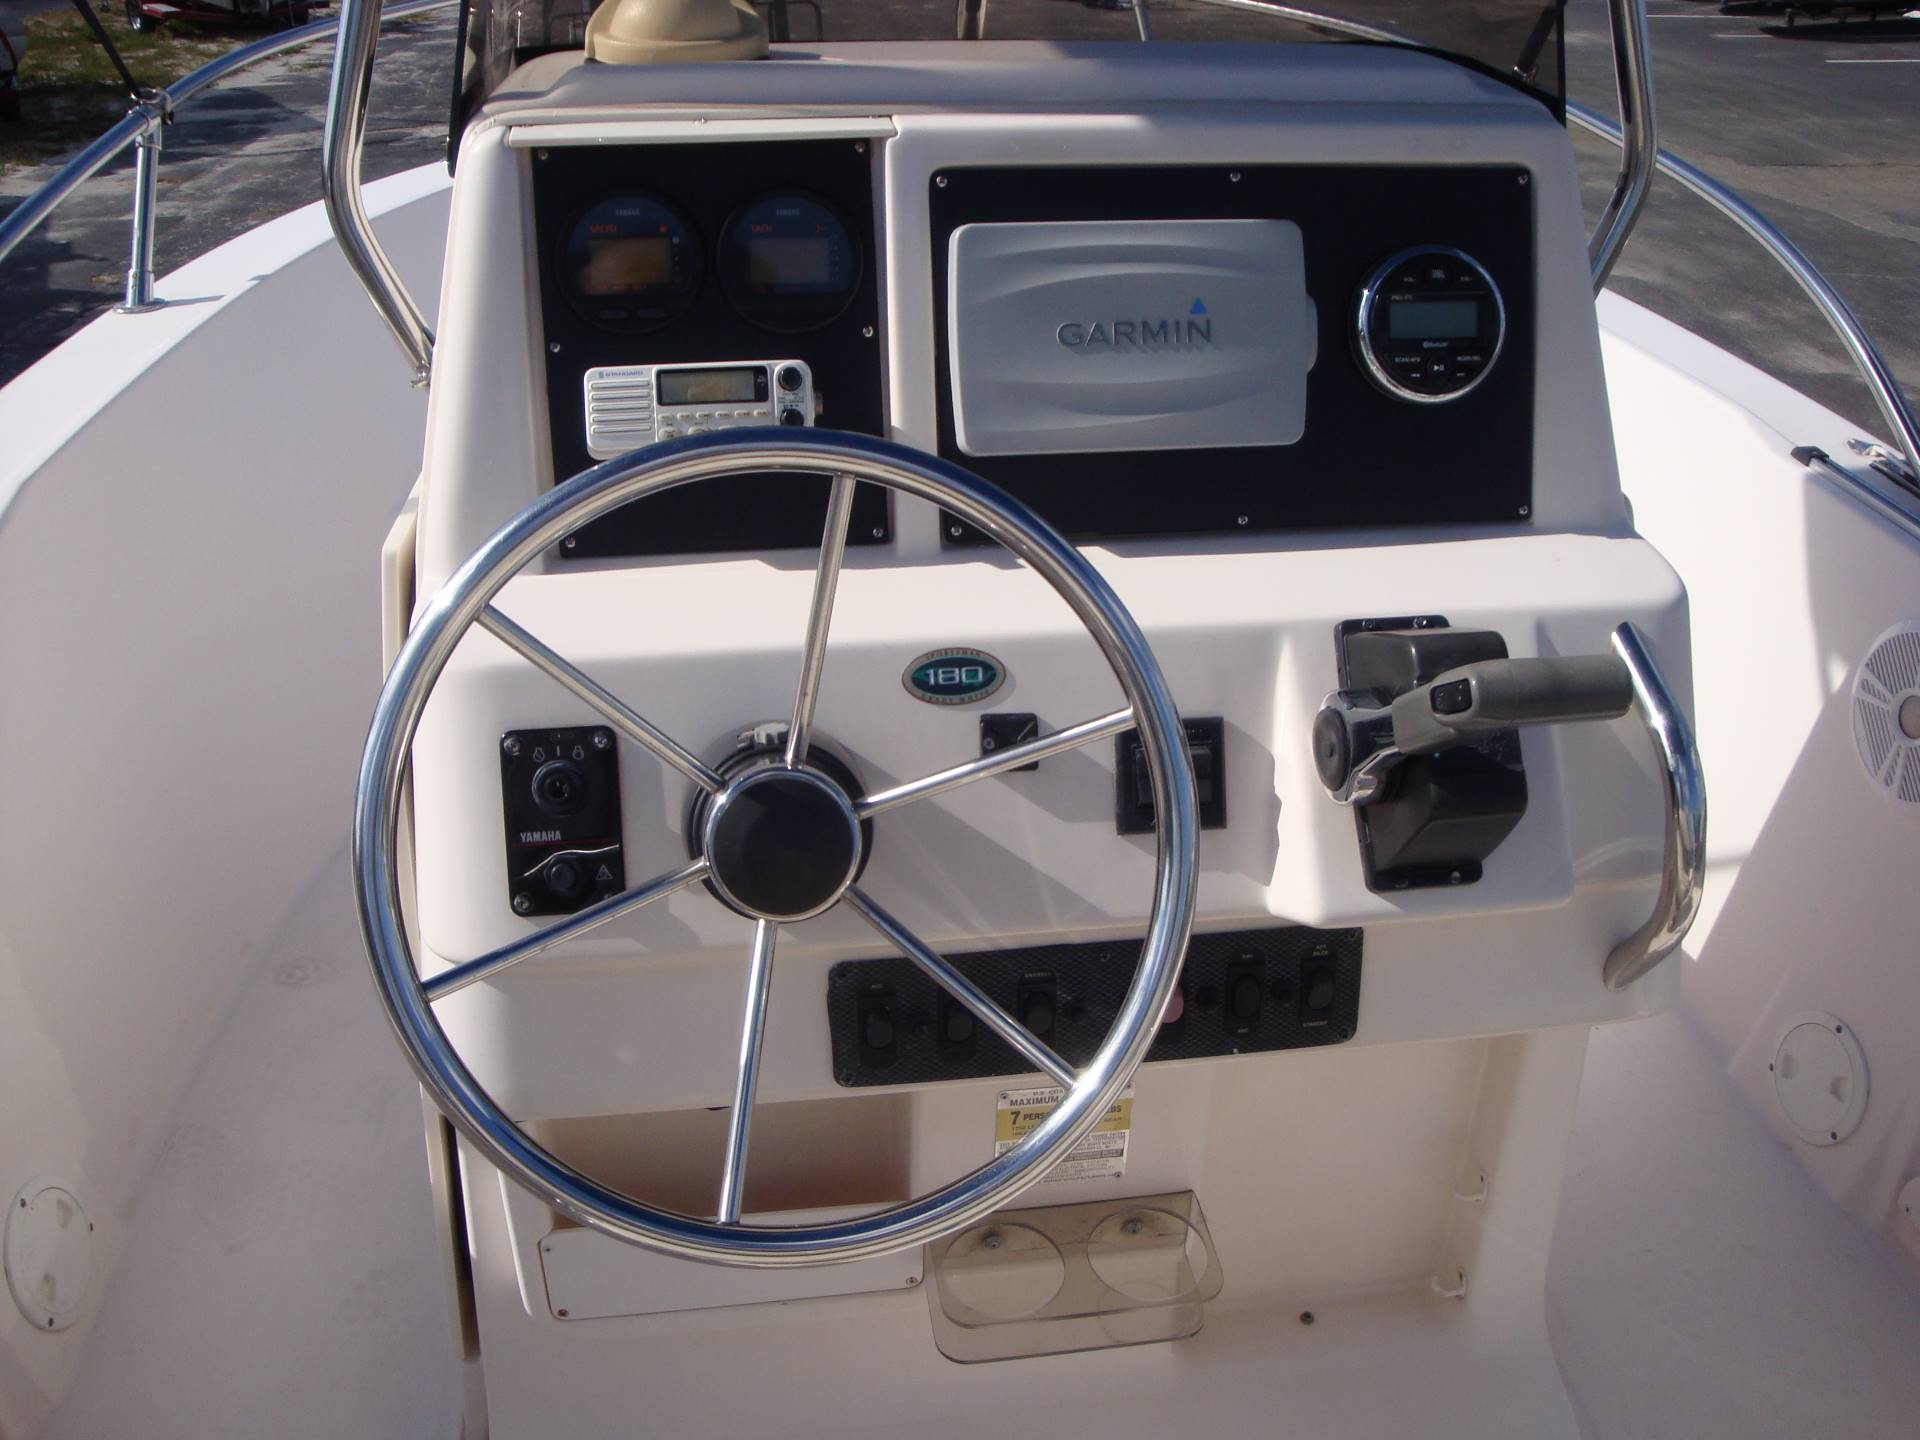 2000 Grady-White Sportsman 180 in Holiday, Florida - Photo 29